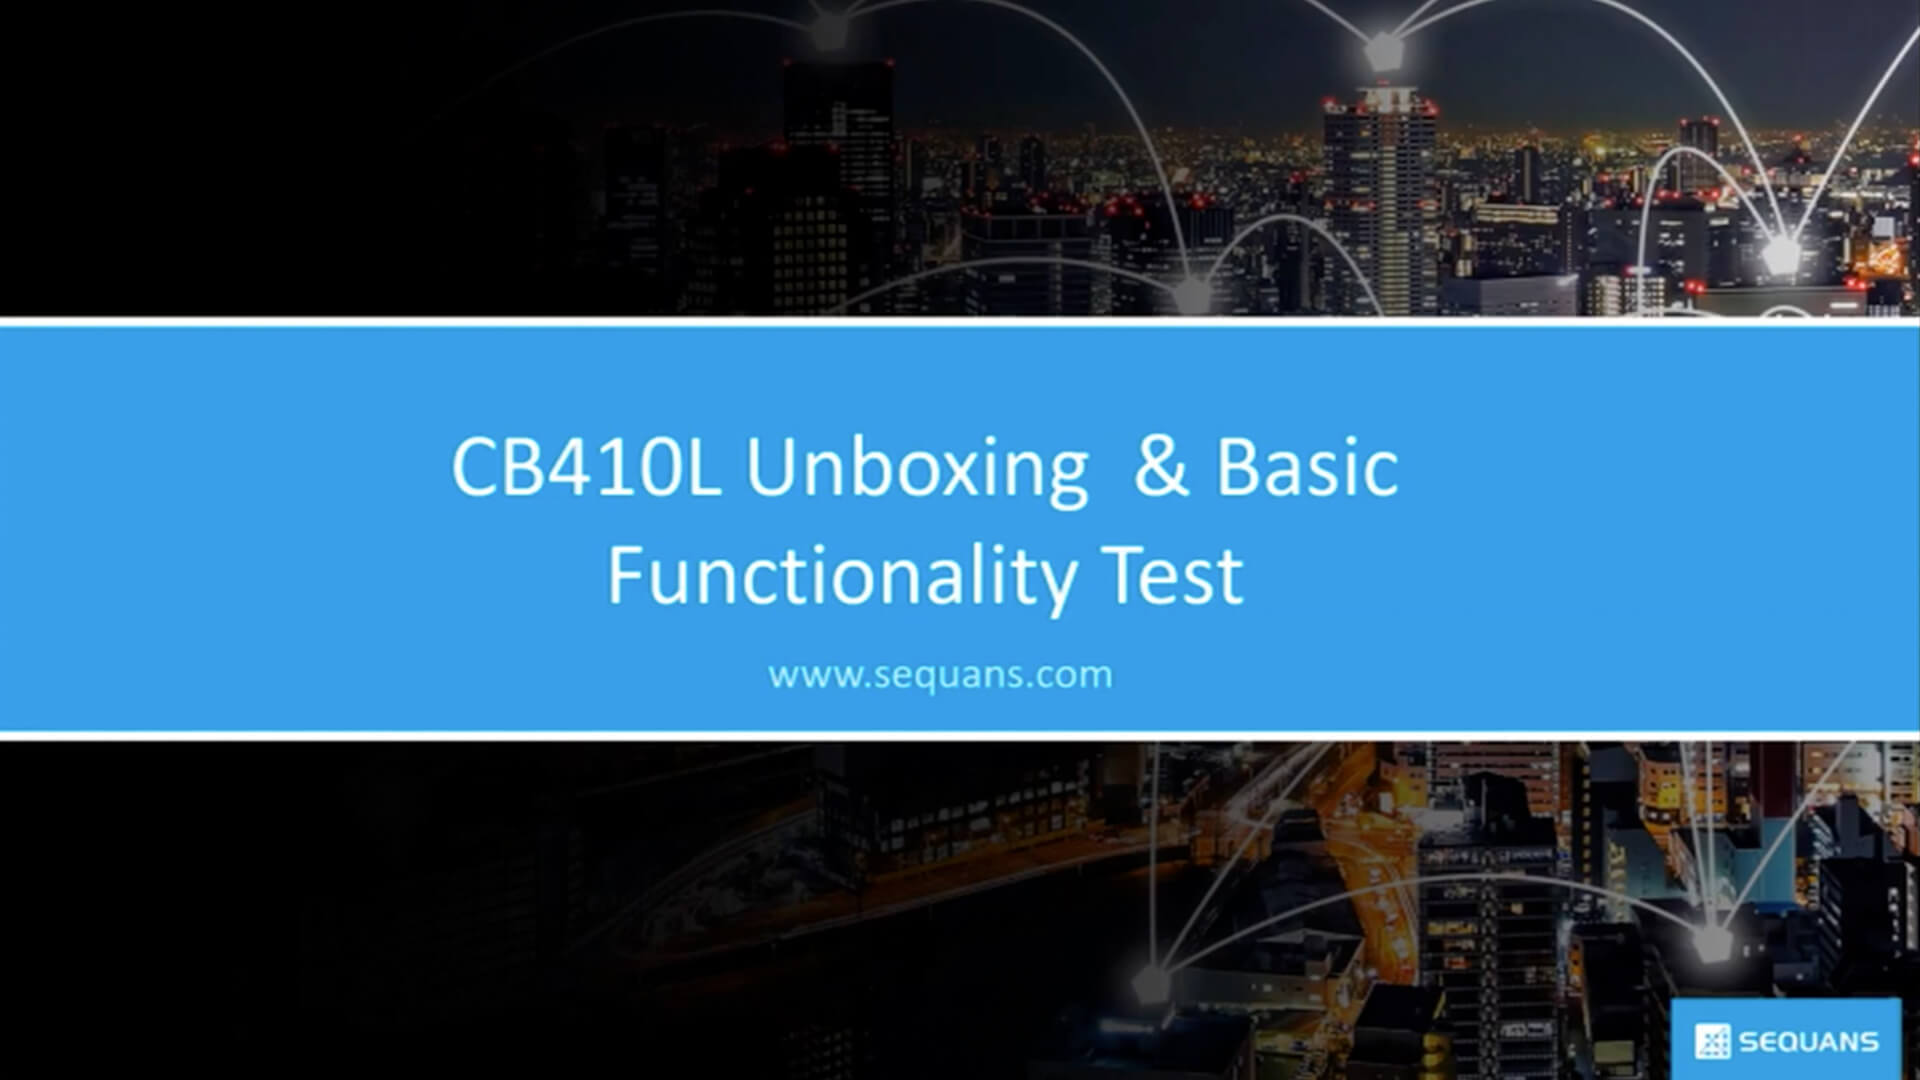 CB410L Unboxing and Basic Functionality Test